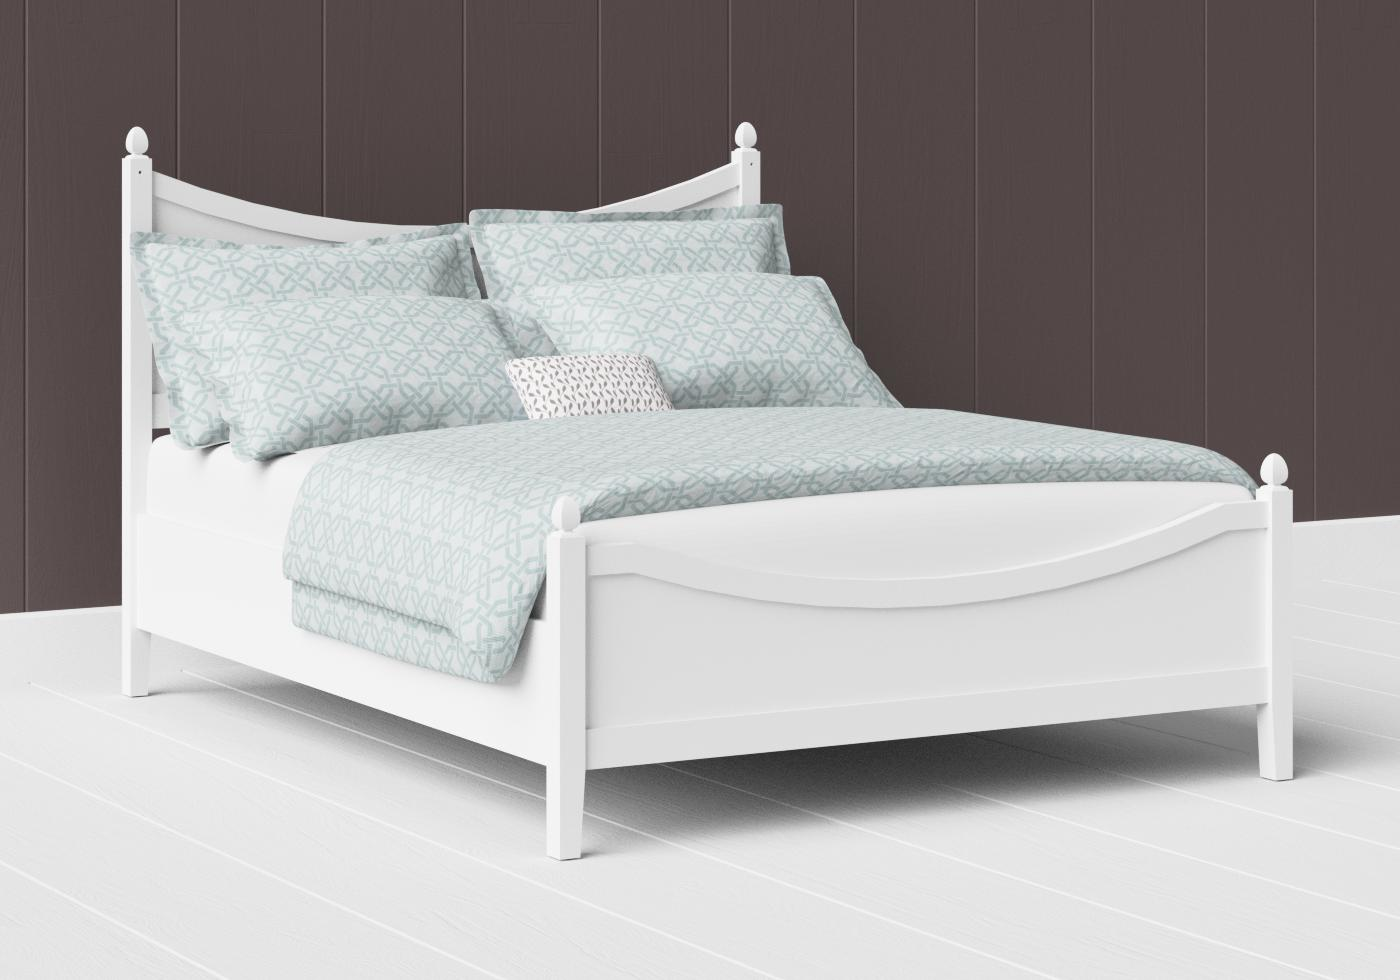 Blake low footend painted wood bed in satin white